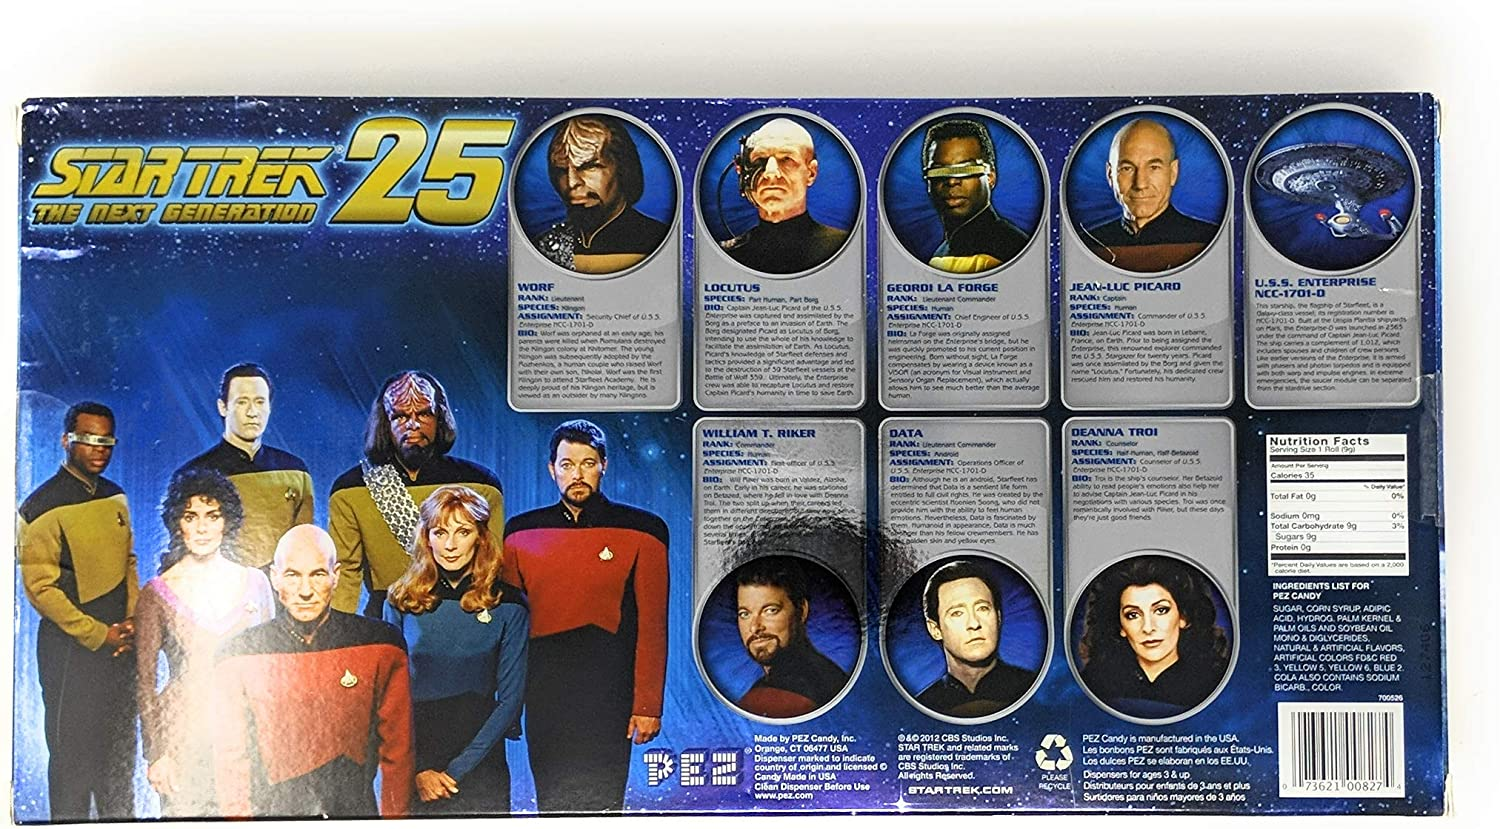 Star Trek : The Next Generation Collectors Set Pez Star Trek : The Next Generation Collector/'s Set PEZ Candy 700526 8 Characters Exclusive